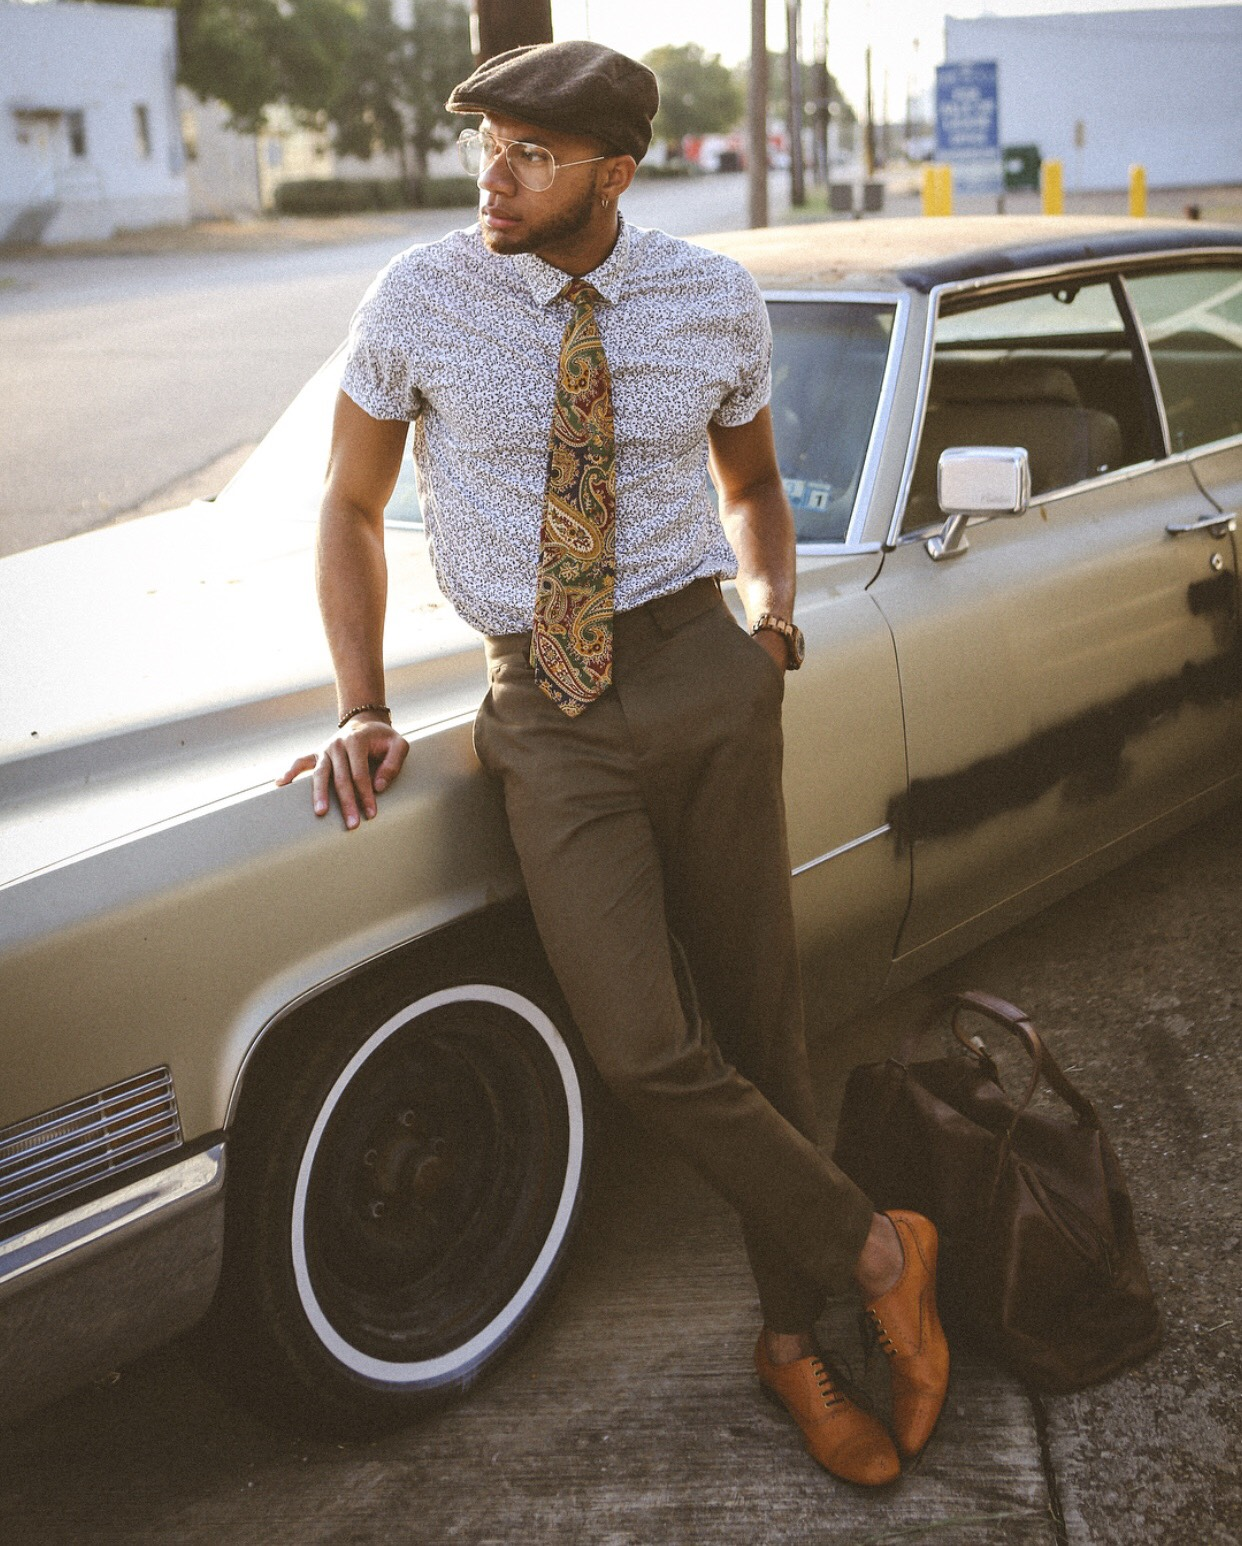 Eric Jones in a Vintage with a Twist setting